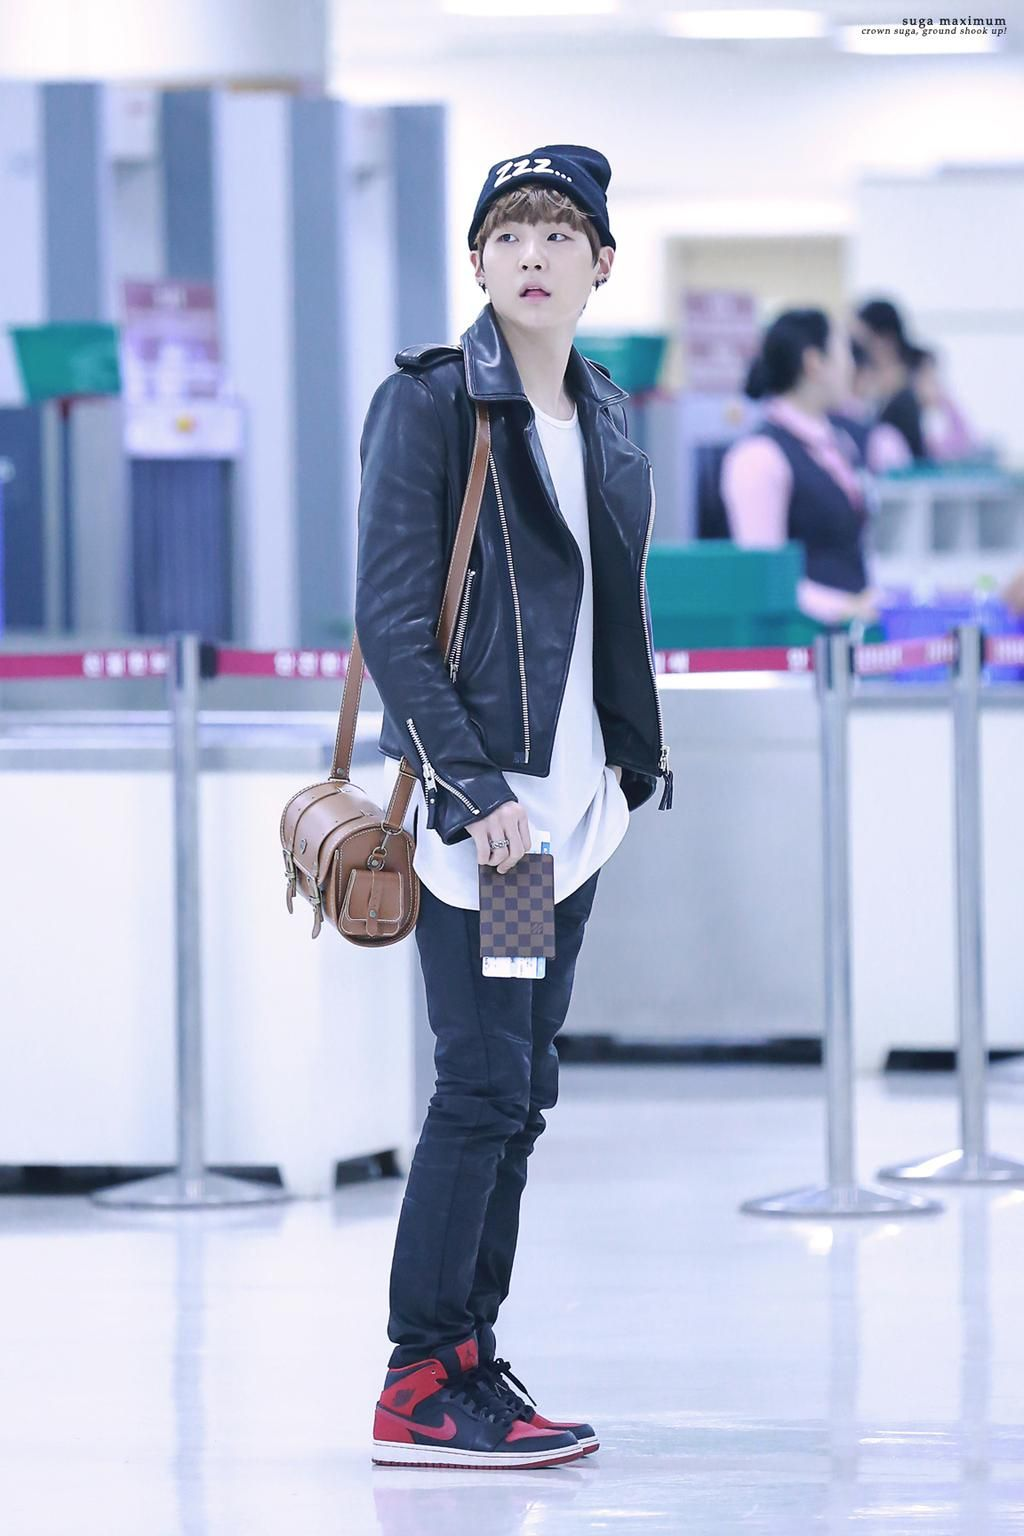 Suga 39 S Airport Fashion Suga Fashion Pinterest Airport Fashion Bts And Fashion